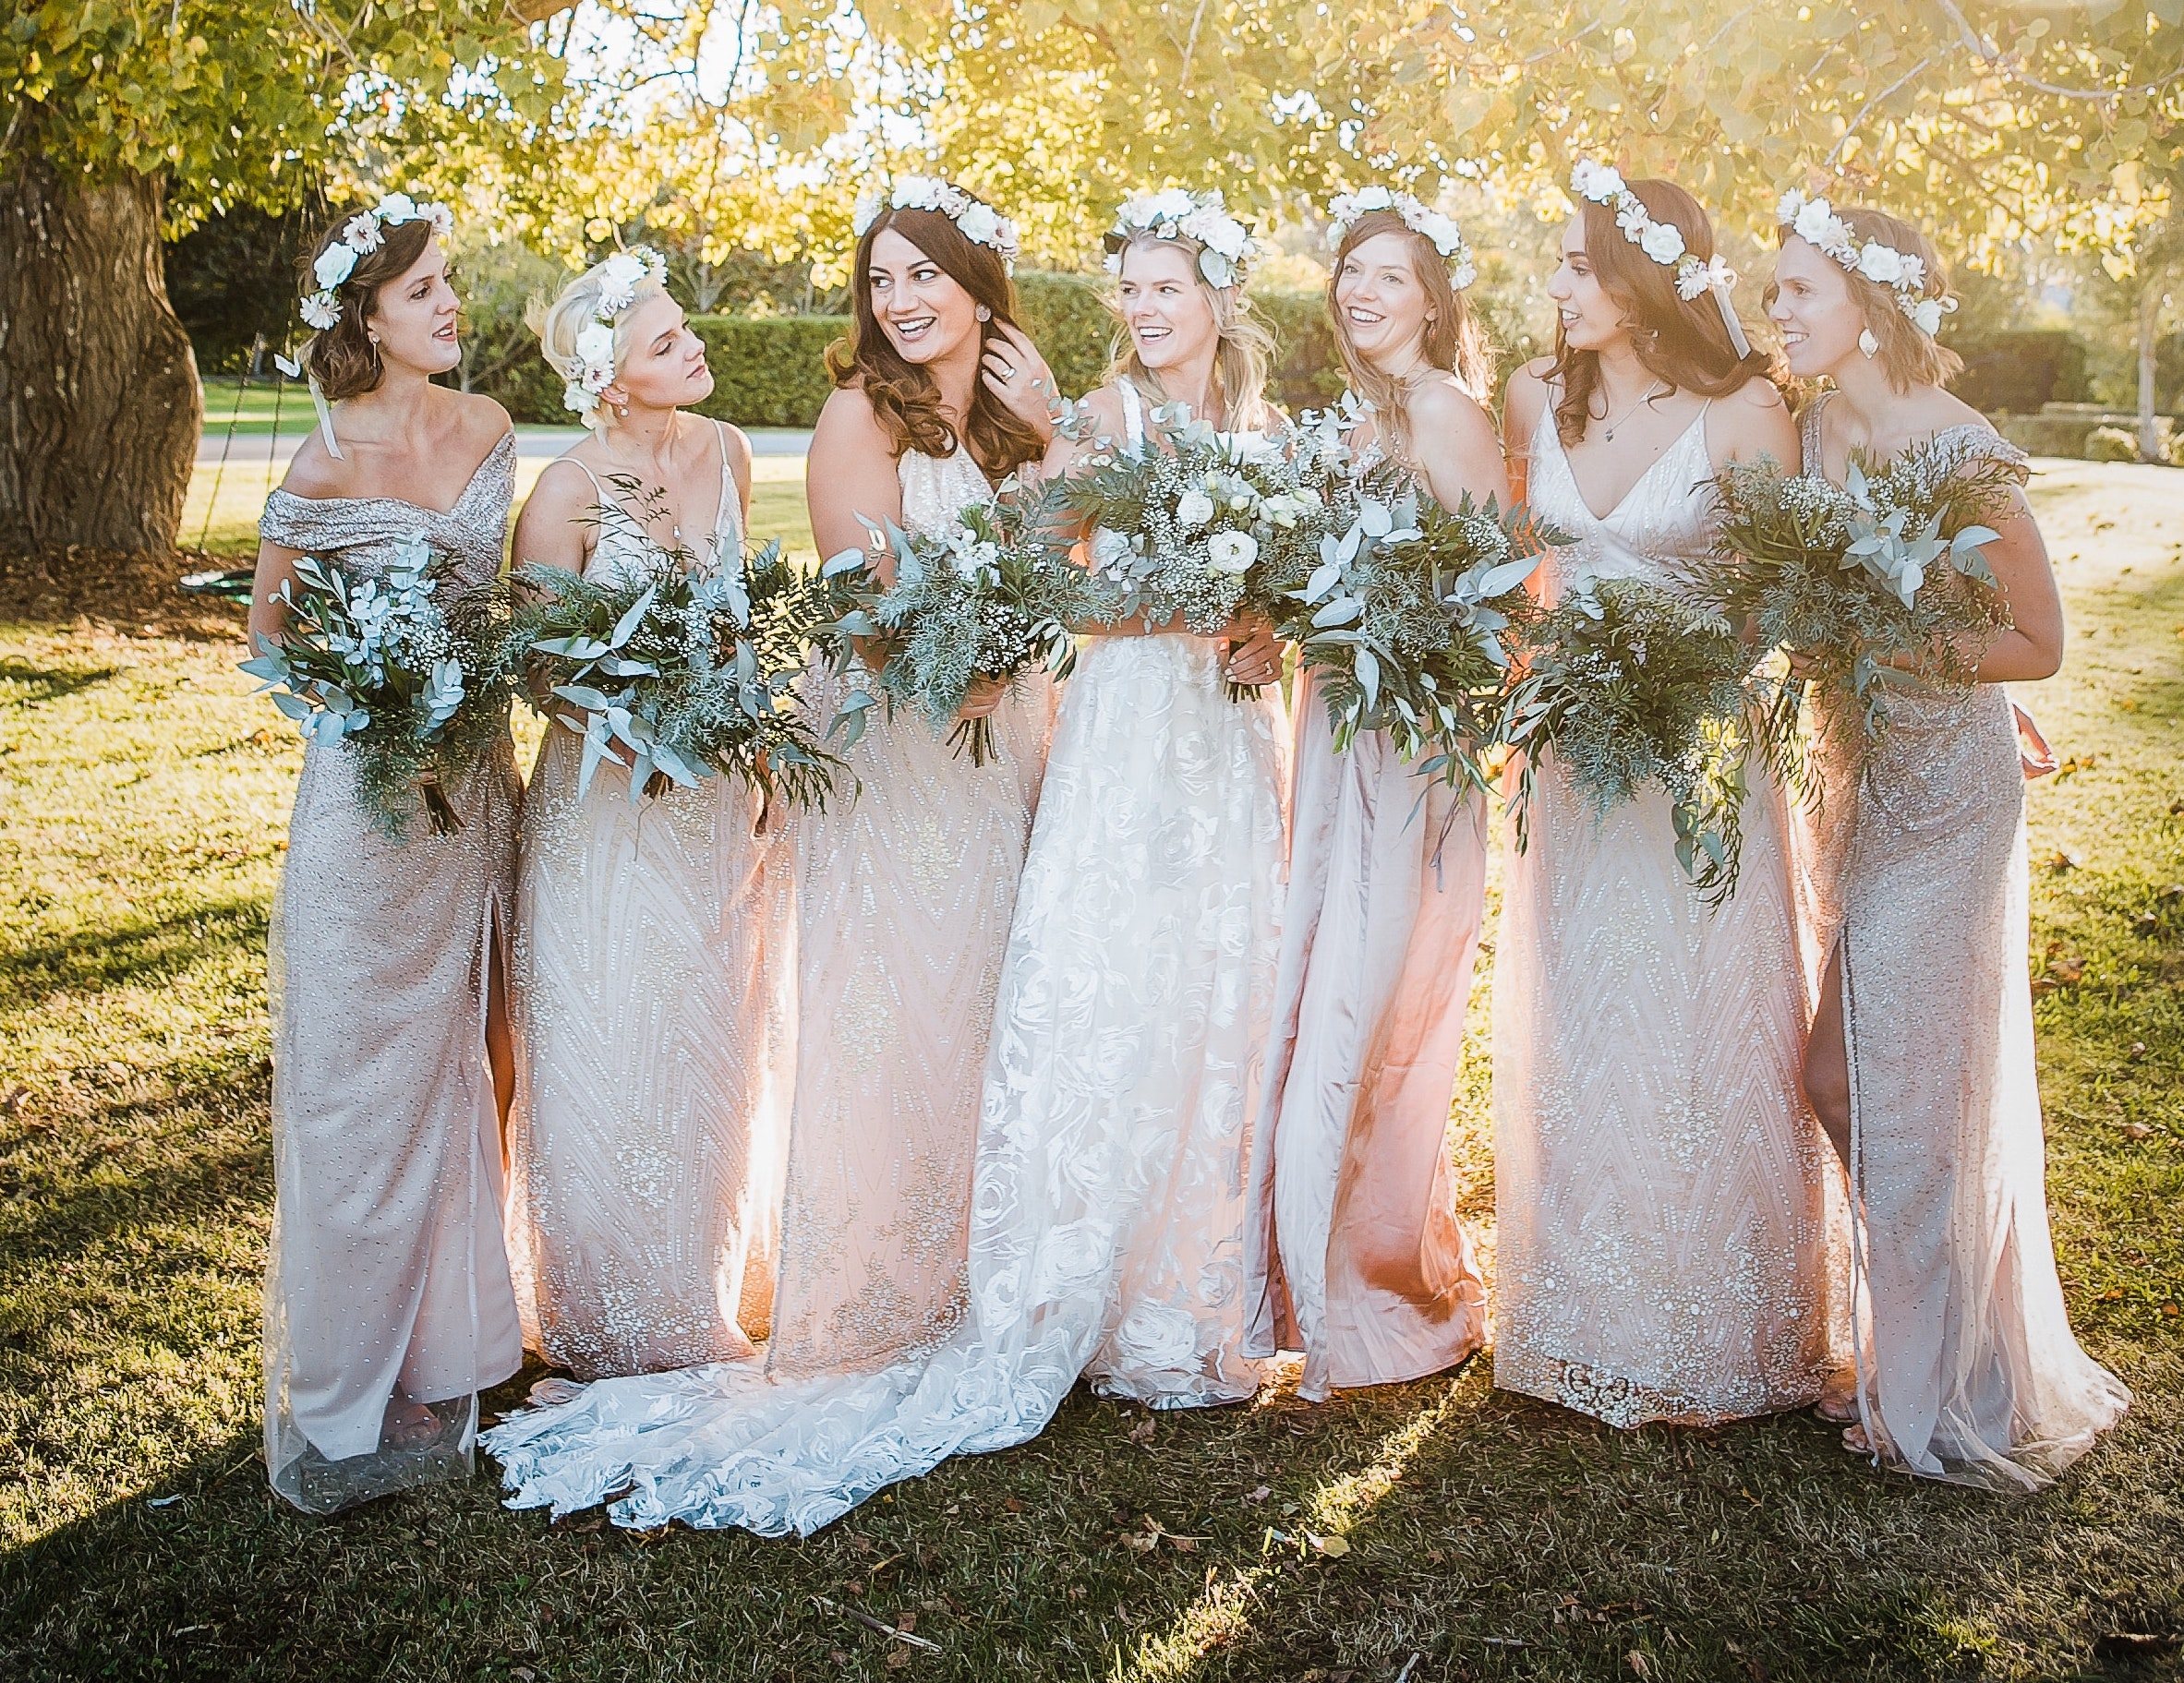 9 Of-The-Moment Bridesmaid Dress Trends You Need to Know About